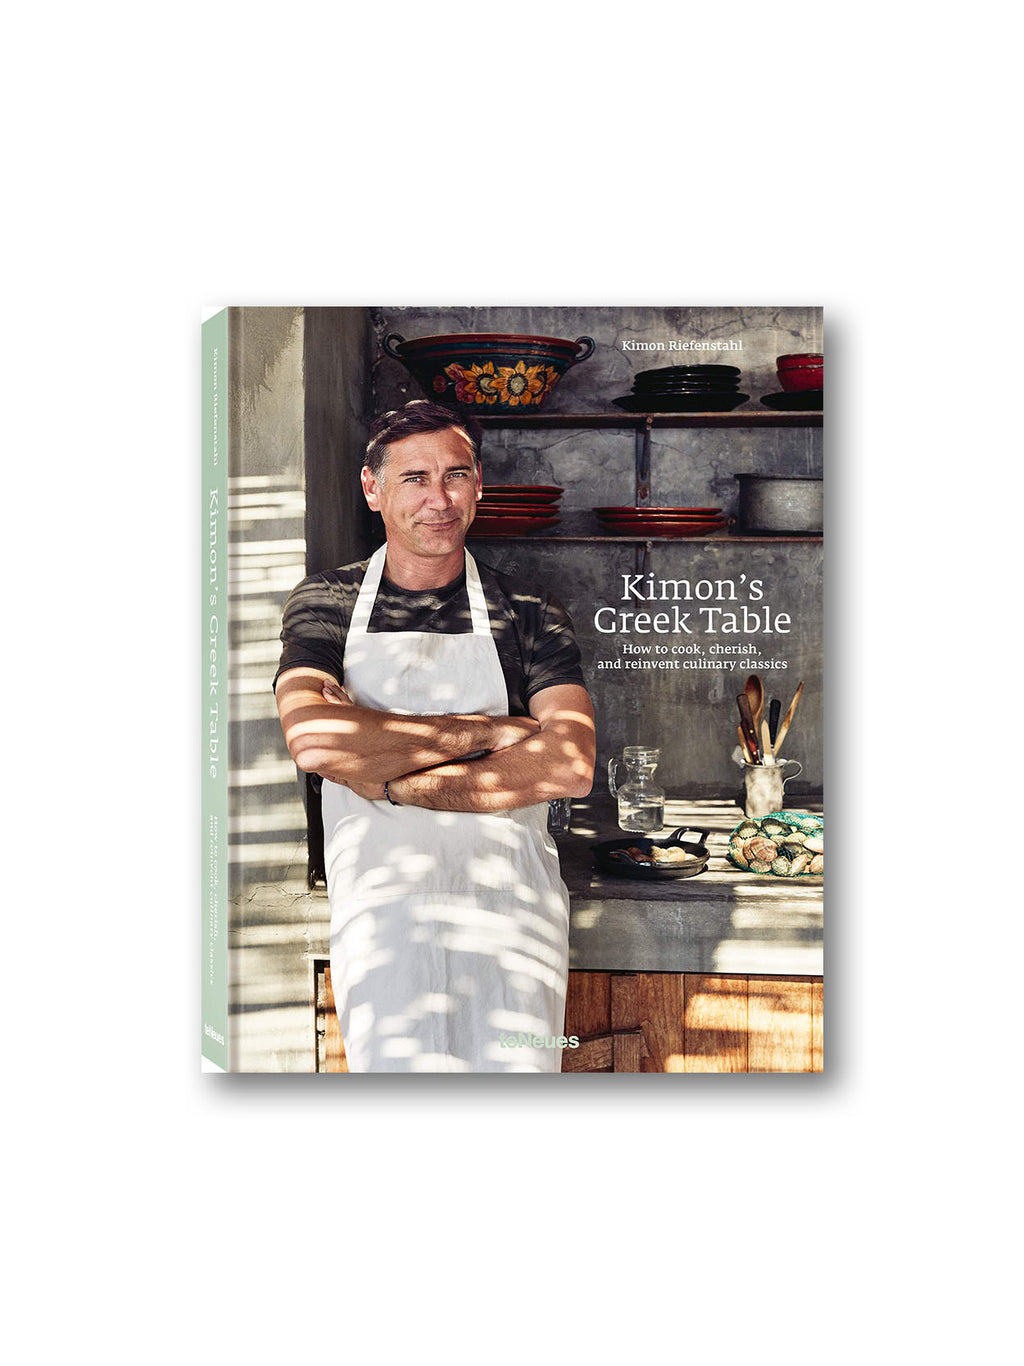 Kimon's Greek Table : How to Cook, Cherish and Reinvent Culinary Classics